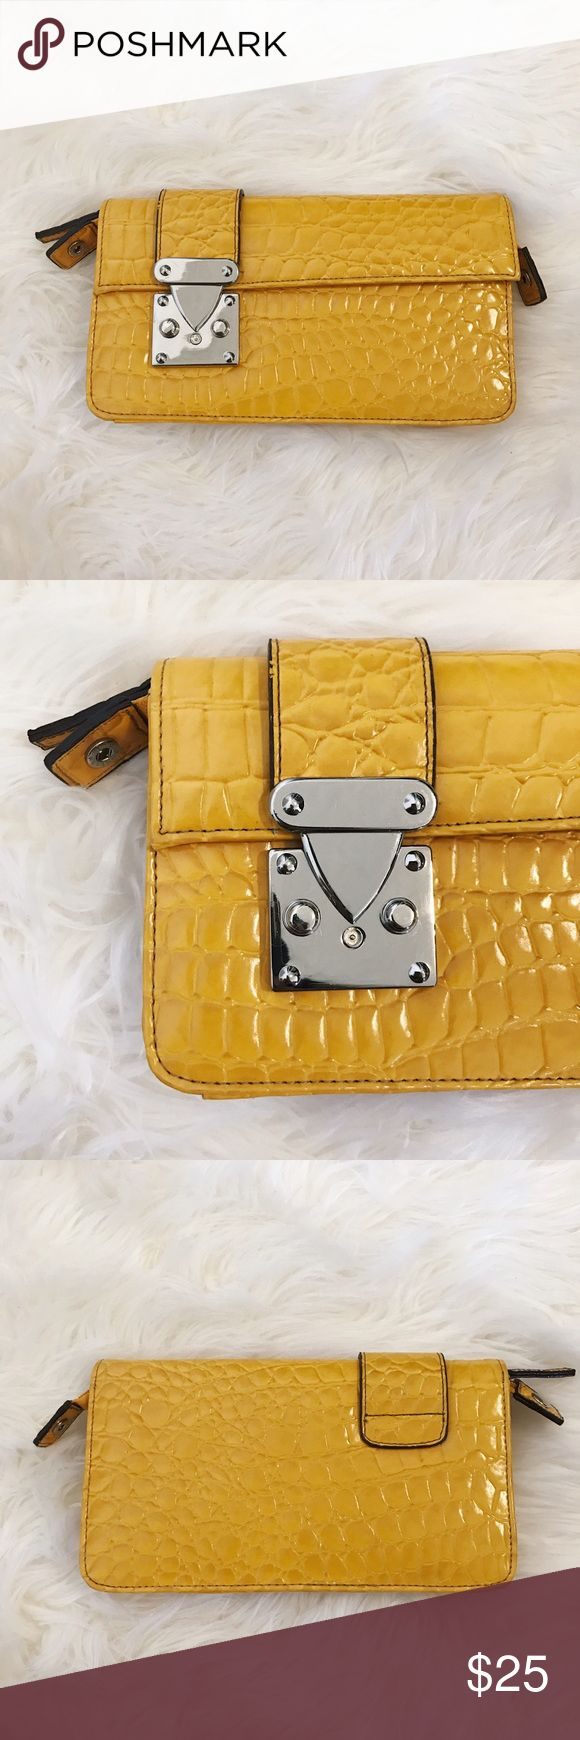 Golden Textured Bag Golden yellow clutch bag with crocodile pattern. Glossy texture. Very good for going out during the day. Definitely a statement piece with it's bright color! (Not UO) Urban Outfitters Bags Clutches & Wristlets